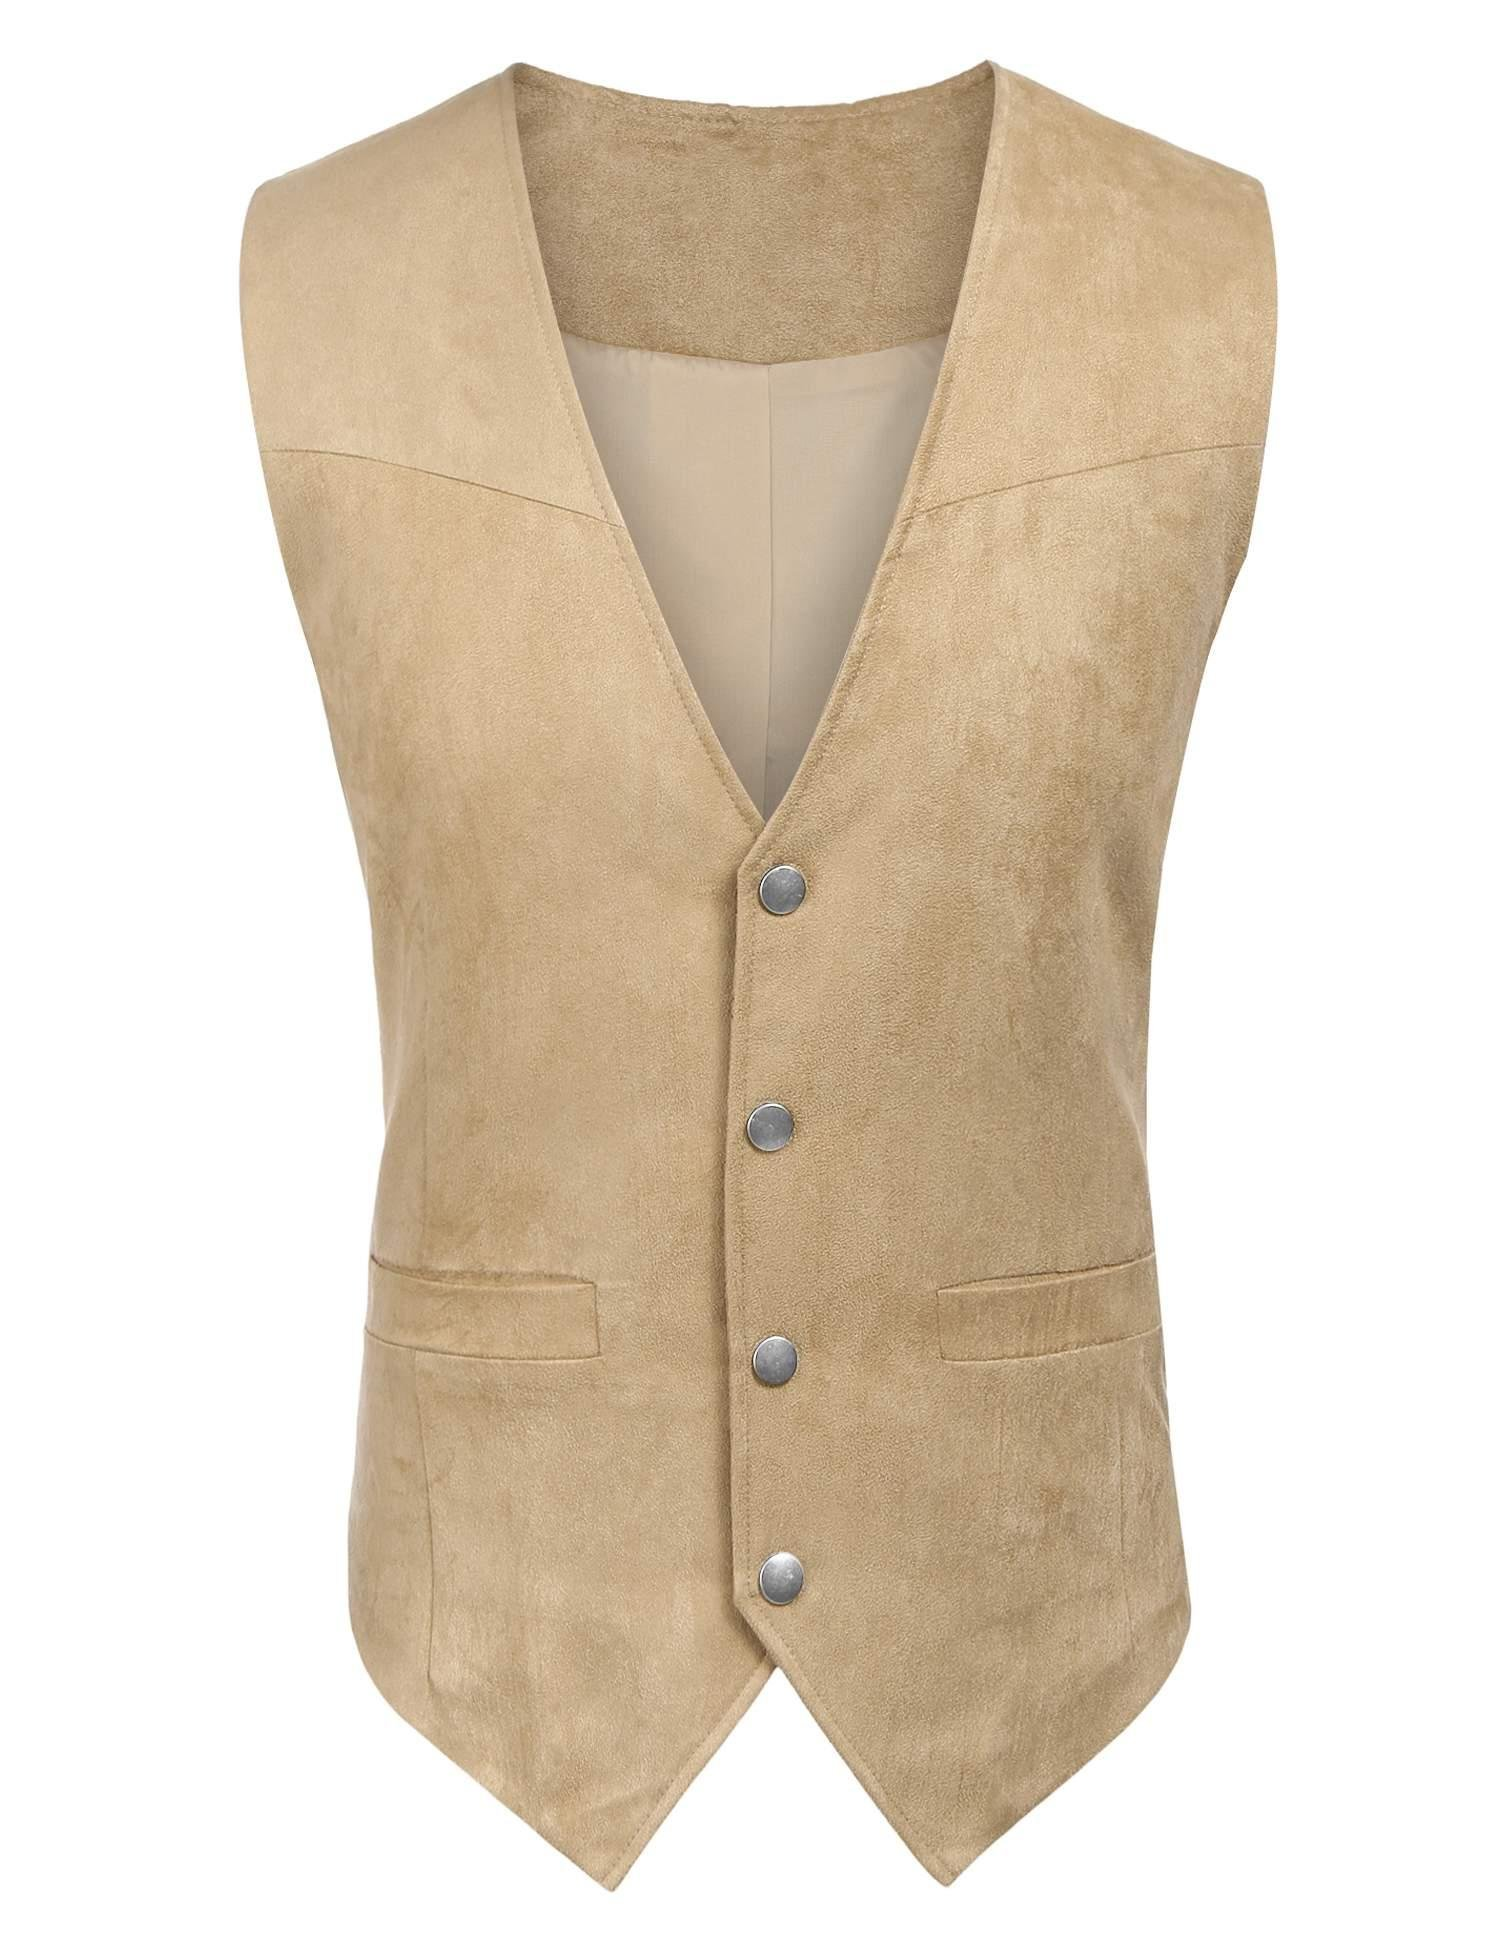 Edited Mens Faux Suede Vest Dress Suit Vest Formal Waistcoat for Wedding by Edited (Image #3)